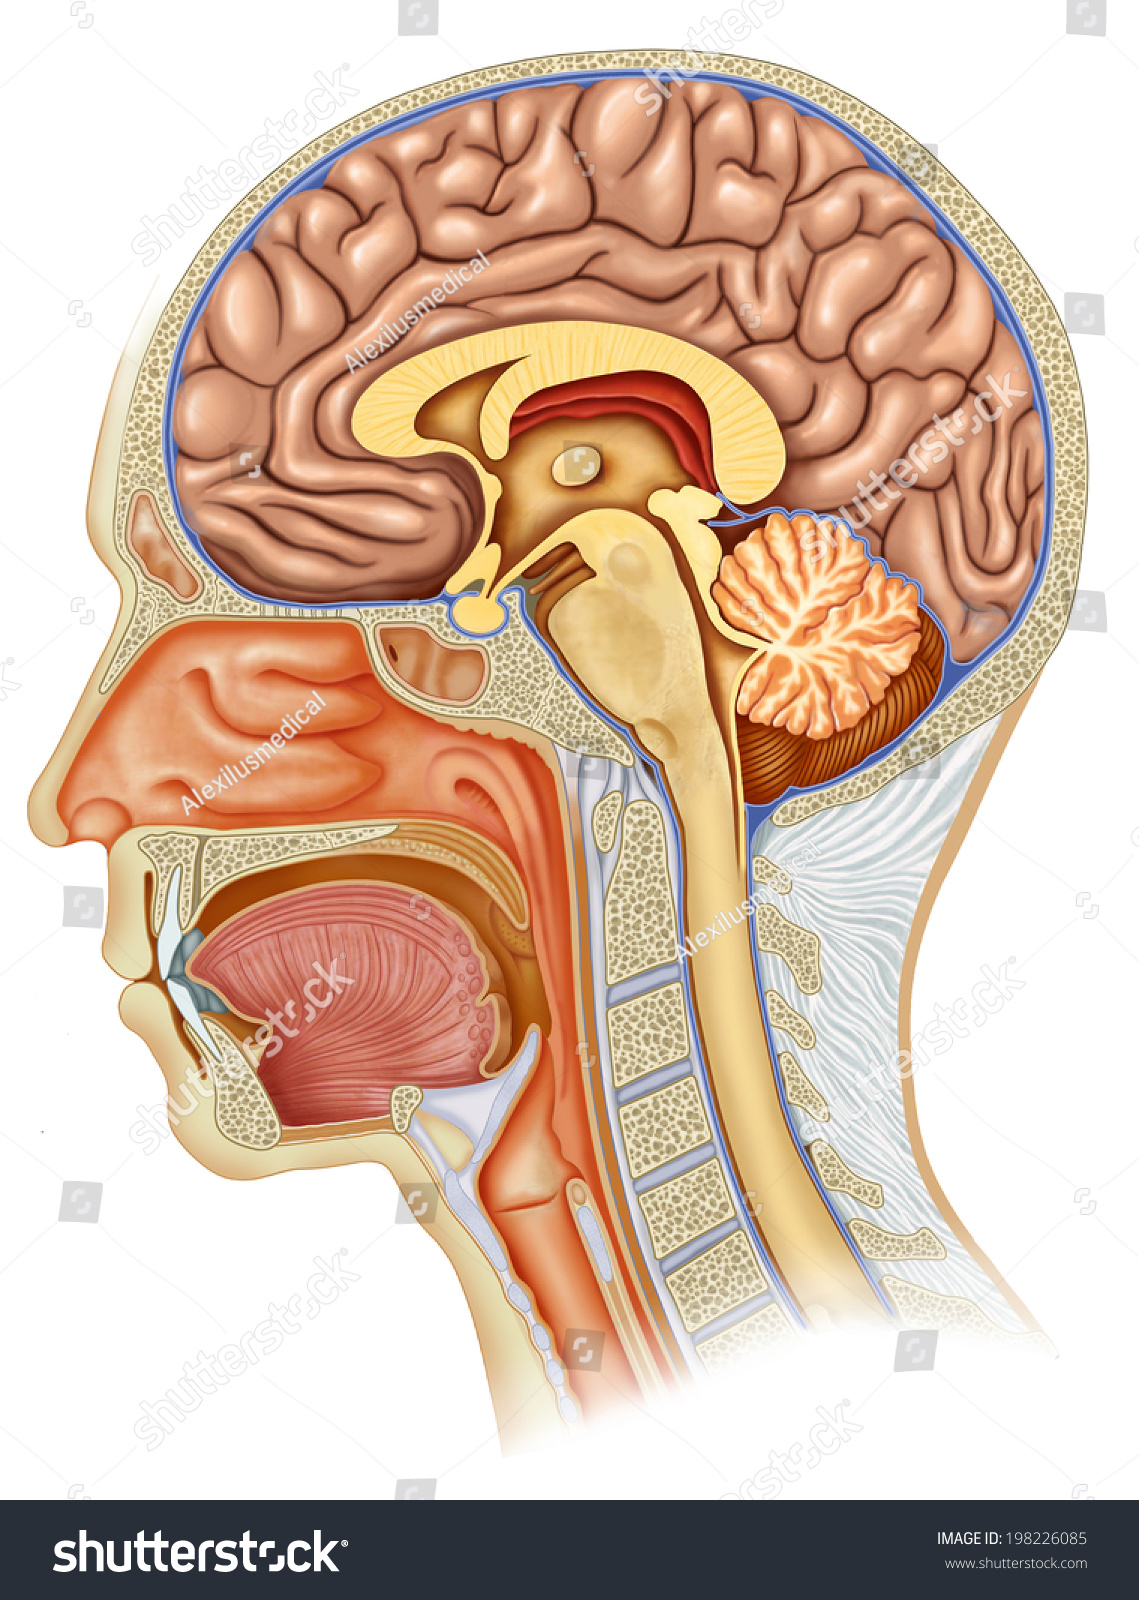 Dissection Human Head Profile All Elements Stock Illustration